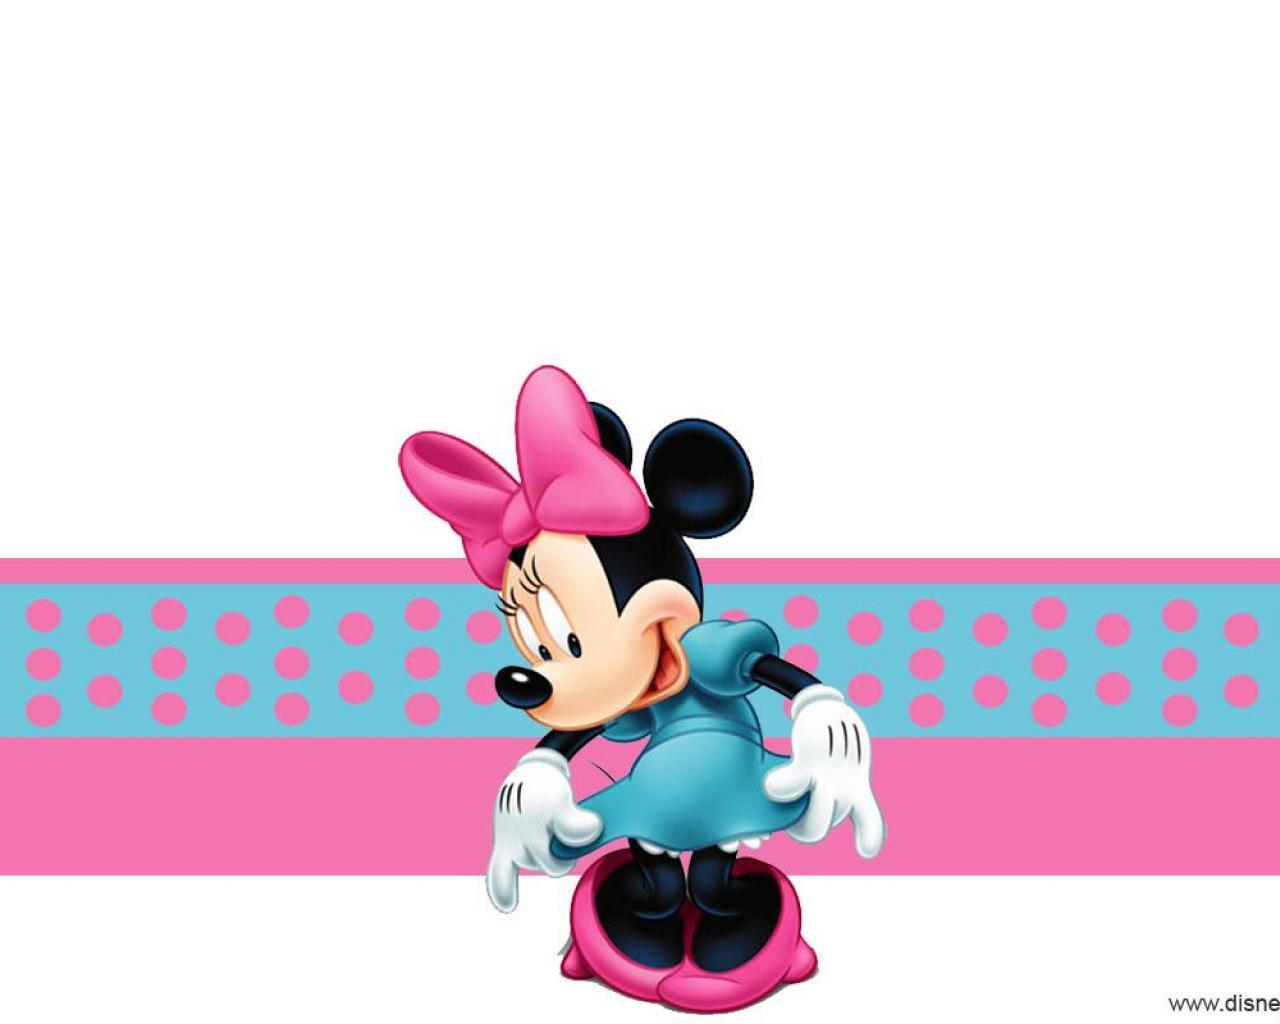 Wallpapers Minnie Mouse Atpeek Search Engine 1280x1024PX ~ Minnie